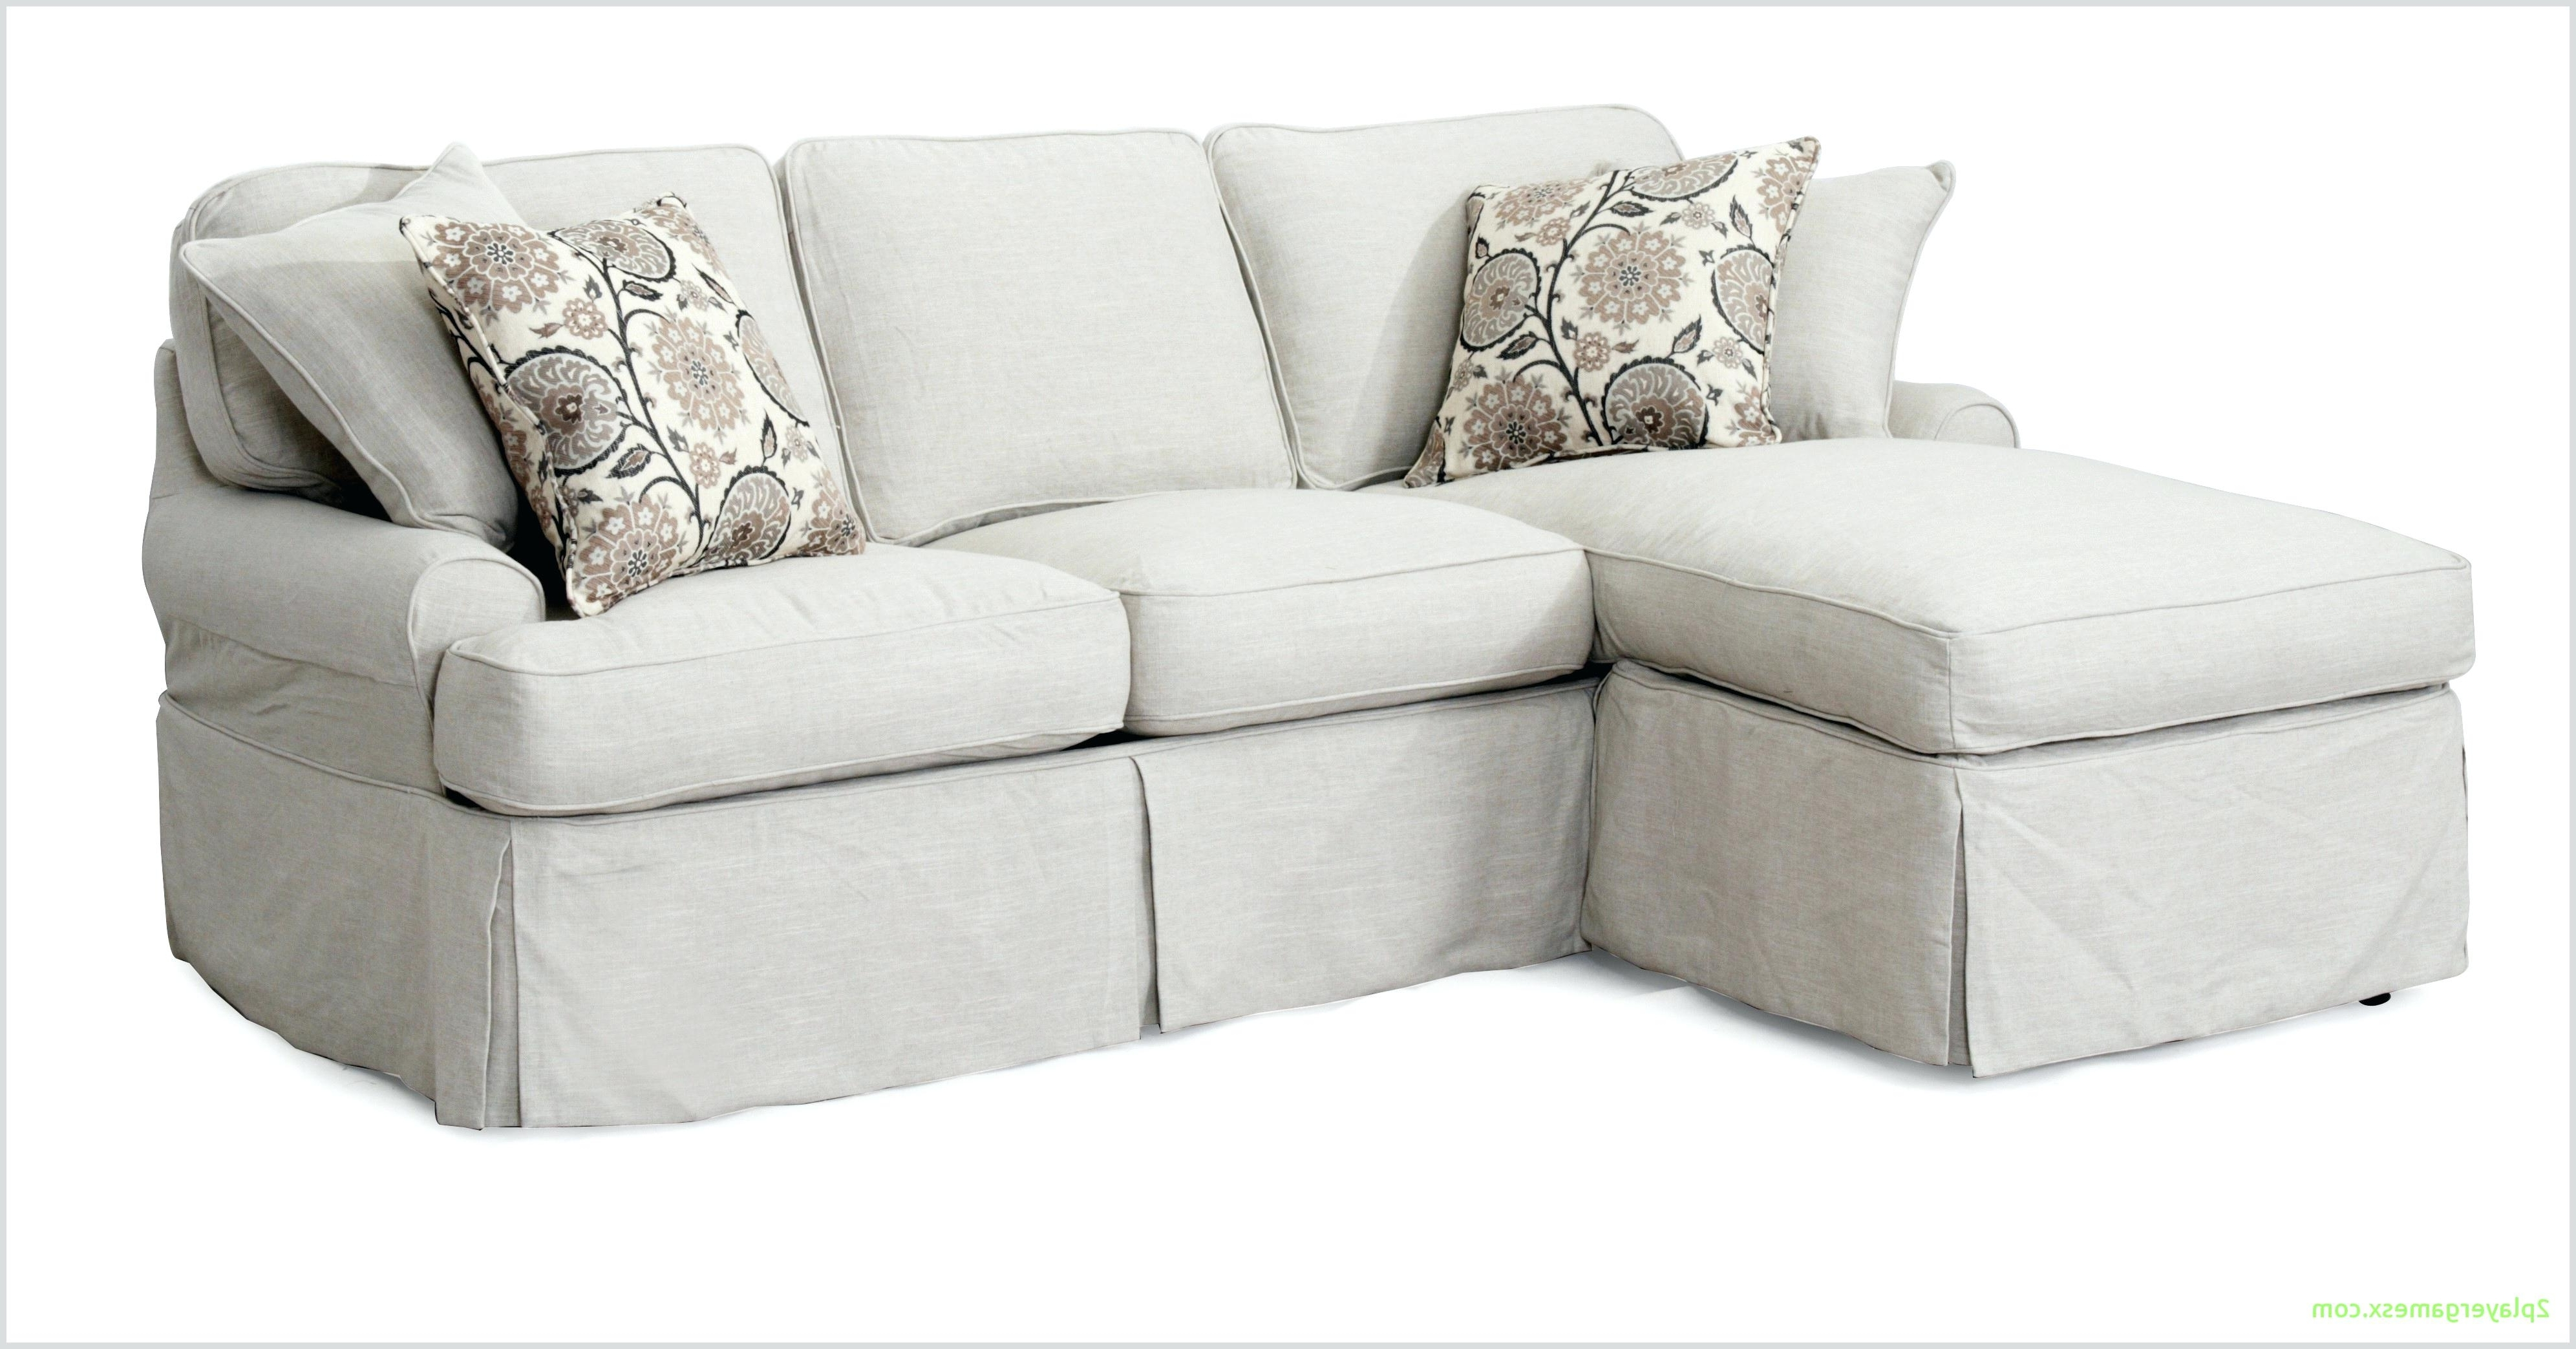 Most Recently Released Chaise Slipcovers In Slipcover For Sectional Slipcovers Couches With Recliners (View 9 of 15)